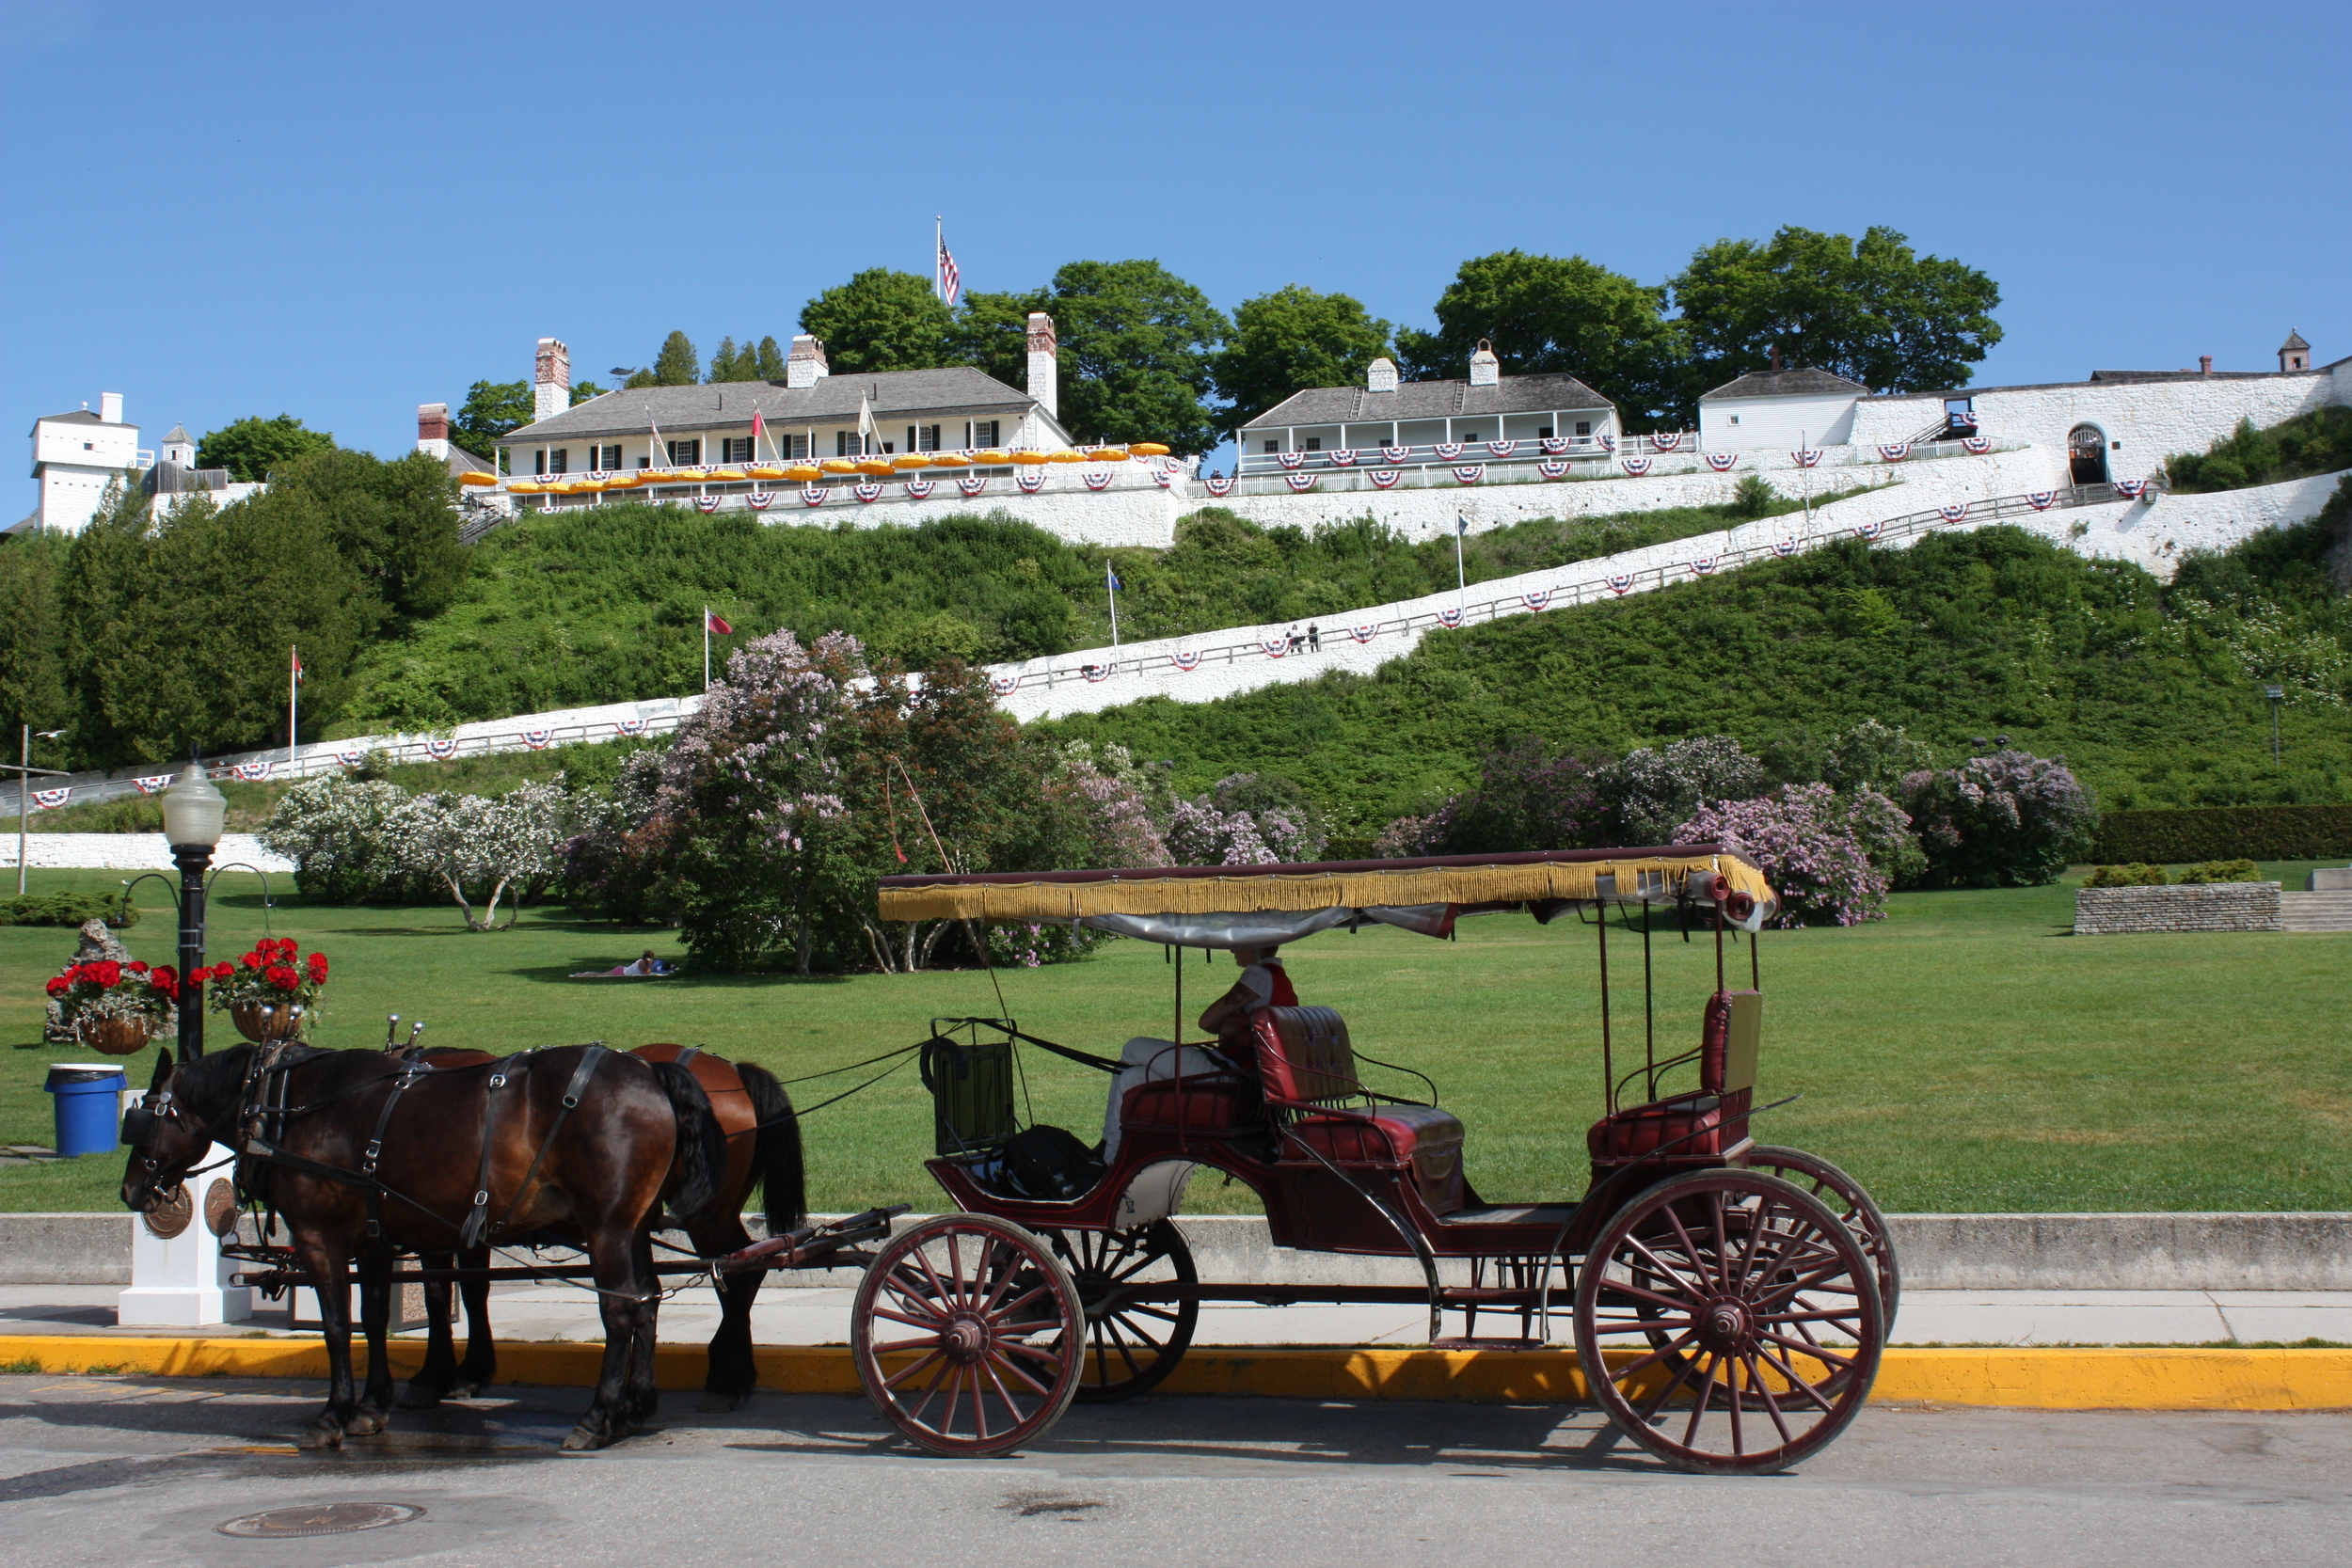 Historic Fort Mackinac (the first battle of the War of 1812 took place here, by the way.)